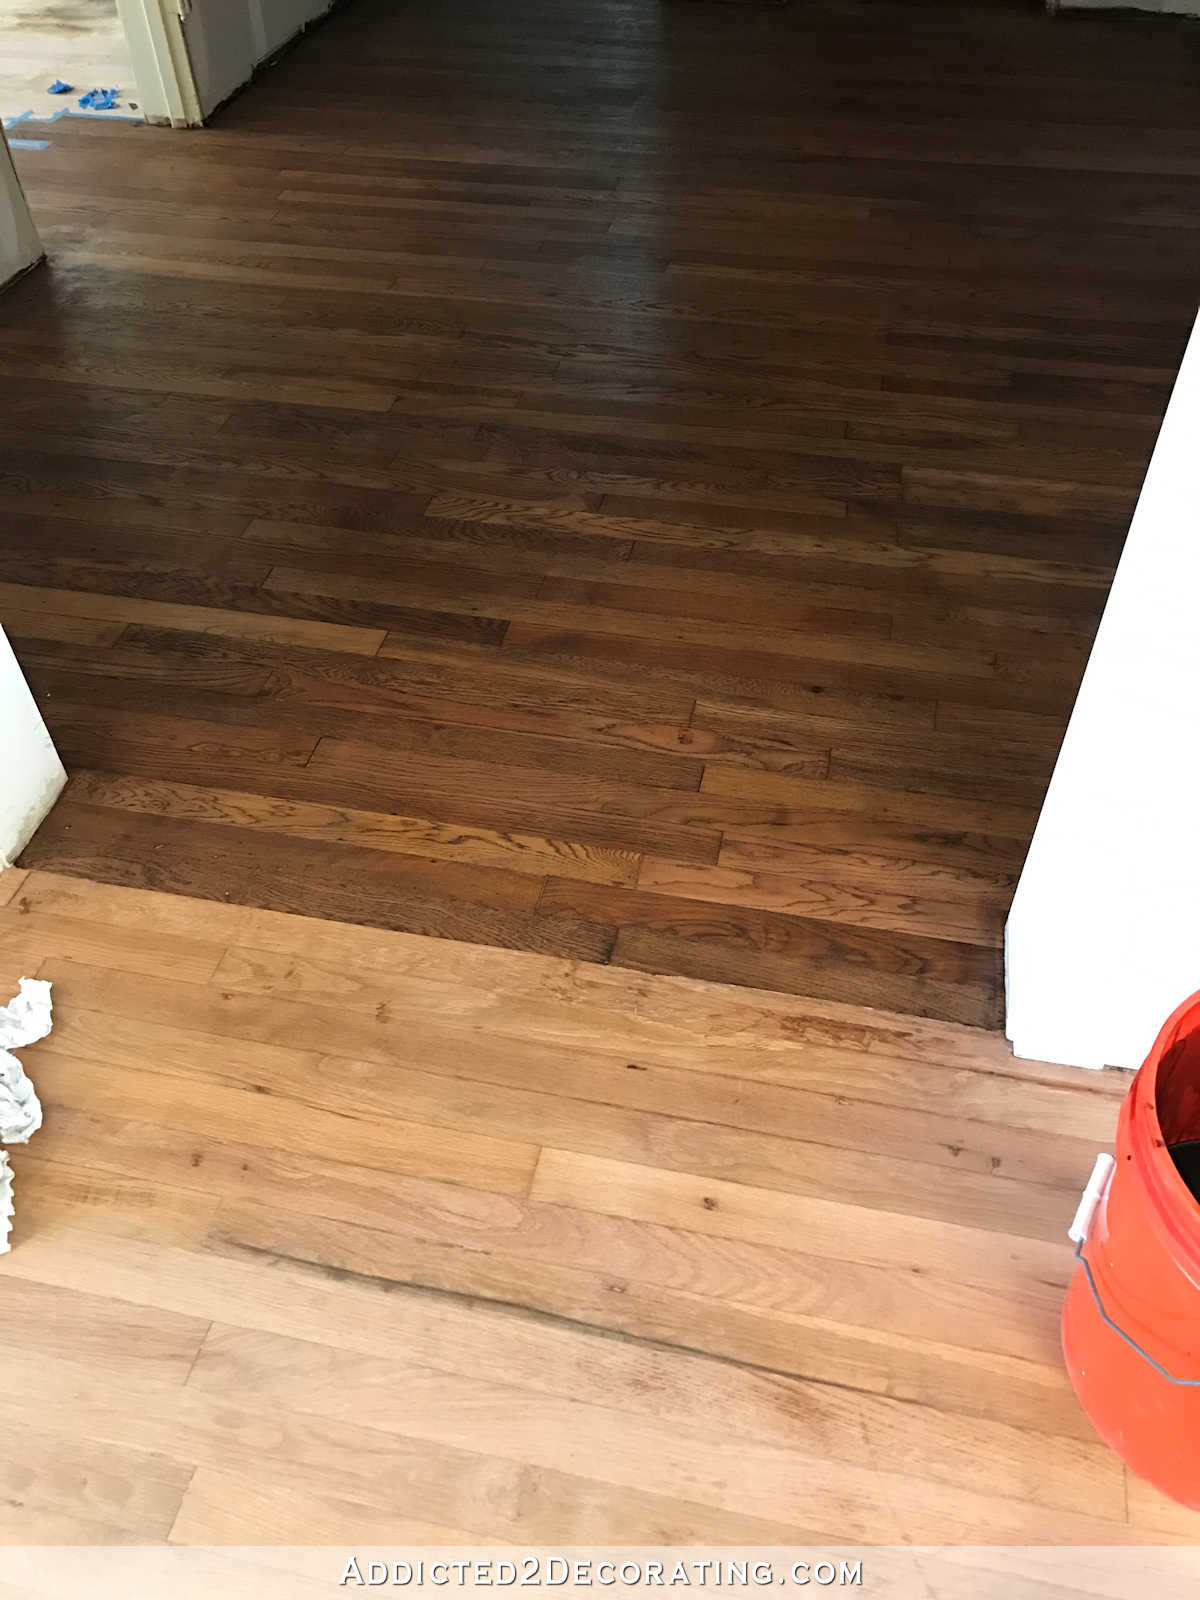 how to refinish hardwood floors video of adventures in staining my red oak hardwood floors products process for staining red oak hardwood floors 2 tape off one section at a time for